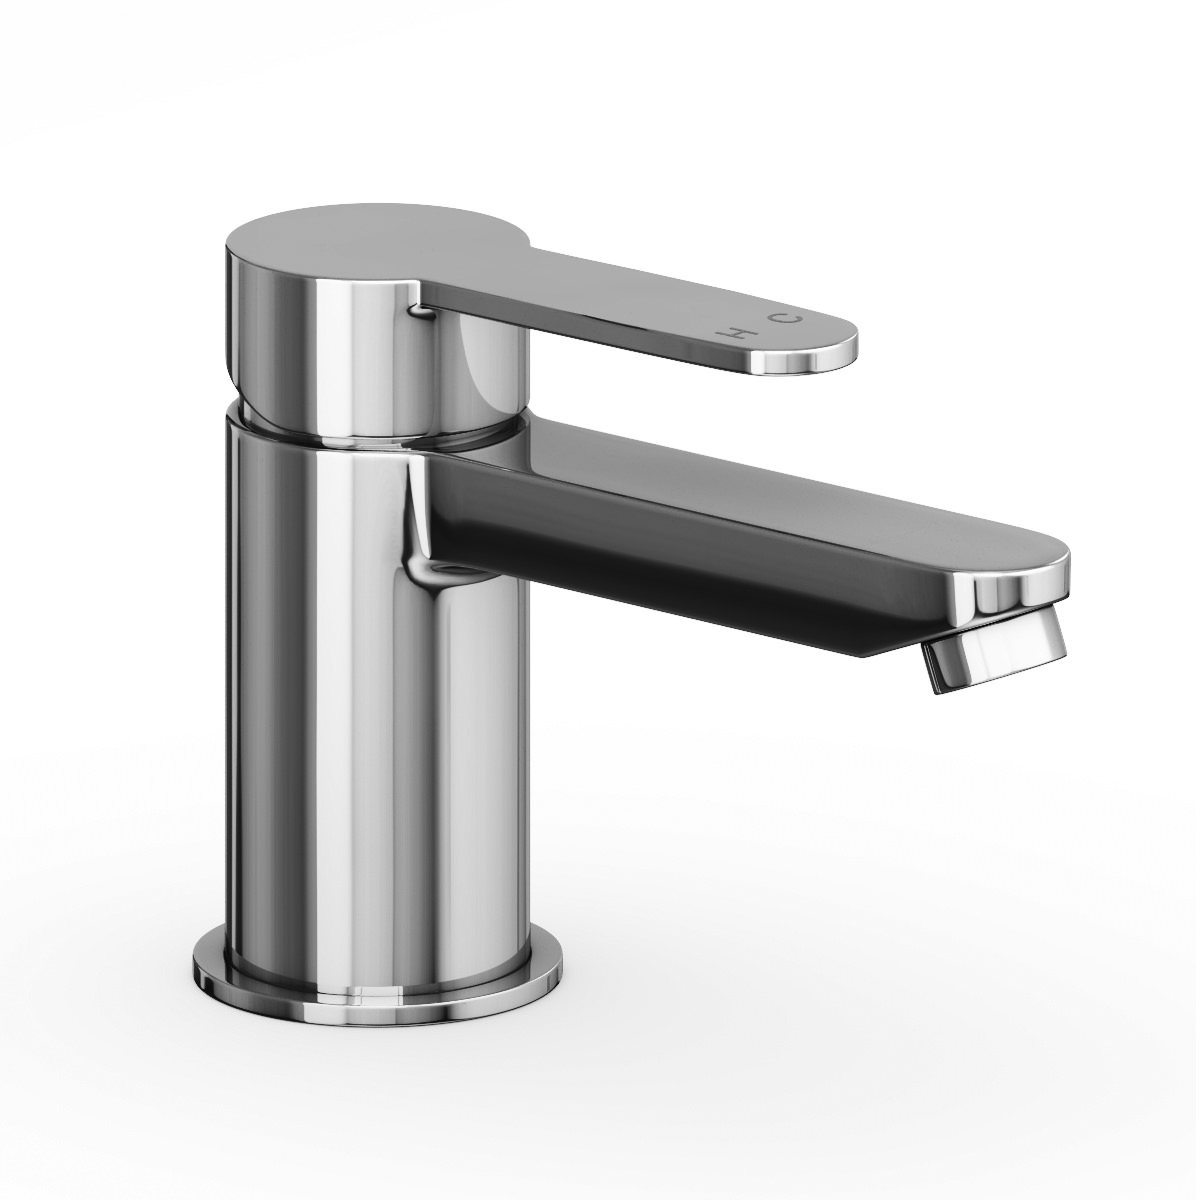 abode debut monobloc mini basin mixer tap chrome ab1551. Black Bedroom Furniture Sets. Home Design Ideas